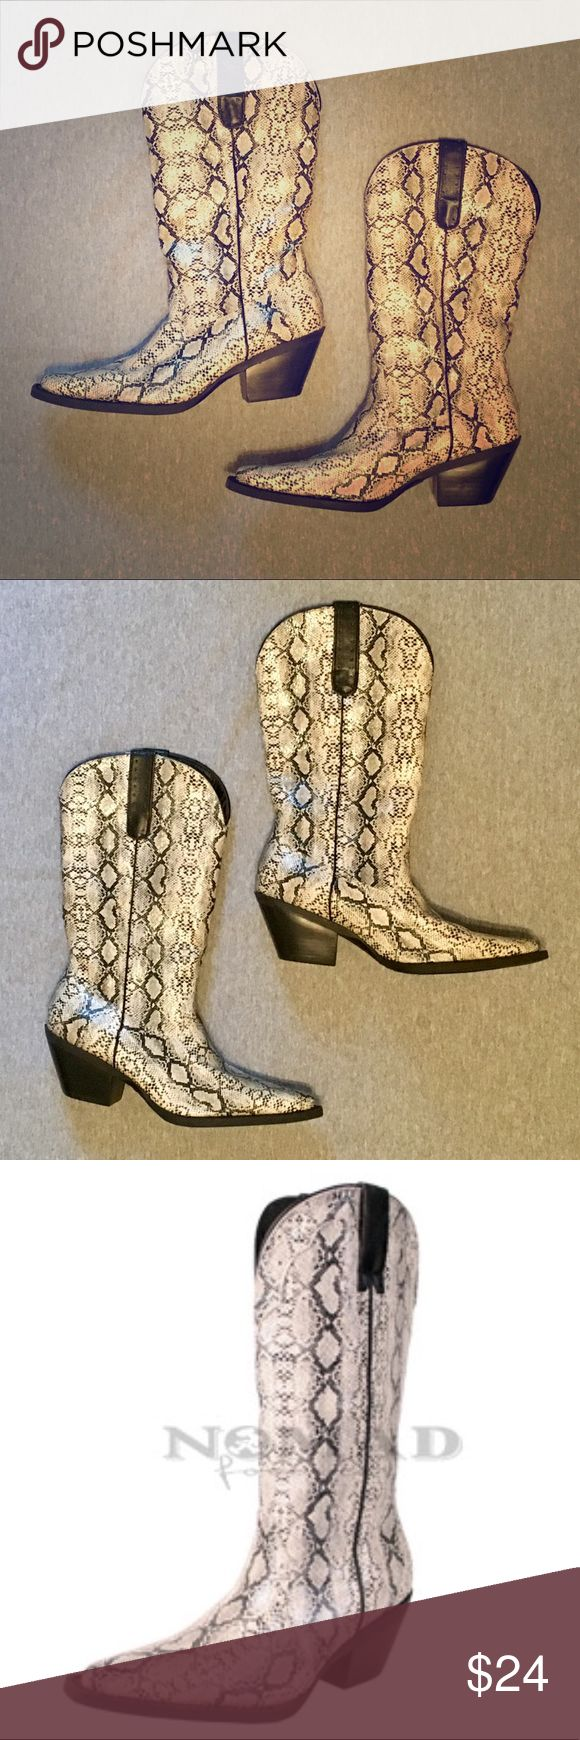 """NWOT Faux Python Skin Cowgirl Boots From Nomad website: """"High quality traditional western style cowboy boot with synthetic python print."""" White, black, and gray in color. Heel height is 2.5"""" and the circumference of the boot opening is 14"""". Women's size 8. New without tags; never worn. Currently for sale on store website. Nomad Footwear Shoes Heeled Boots"""